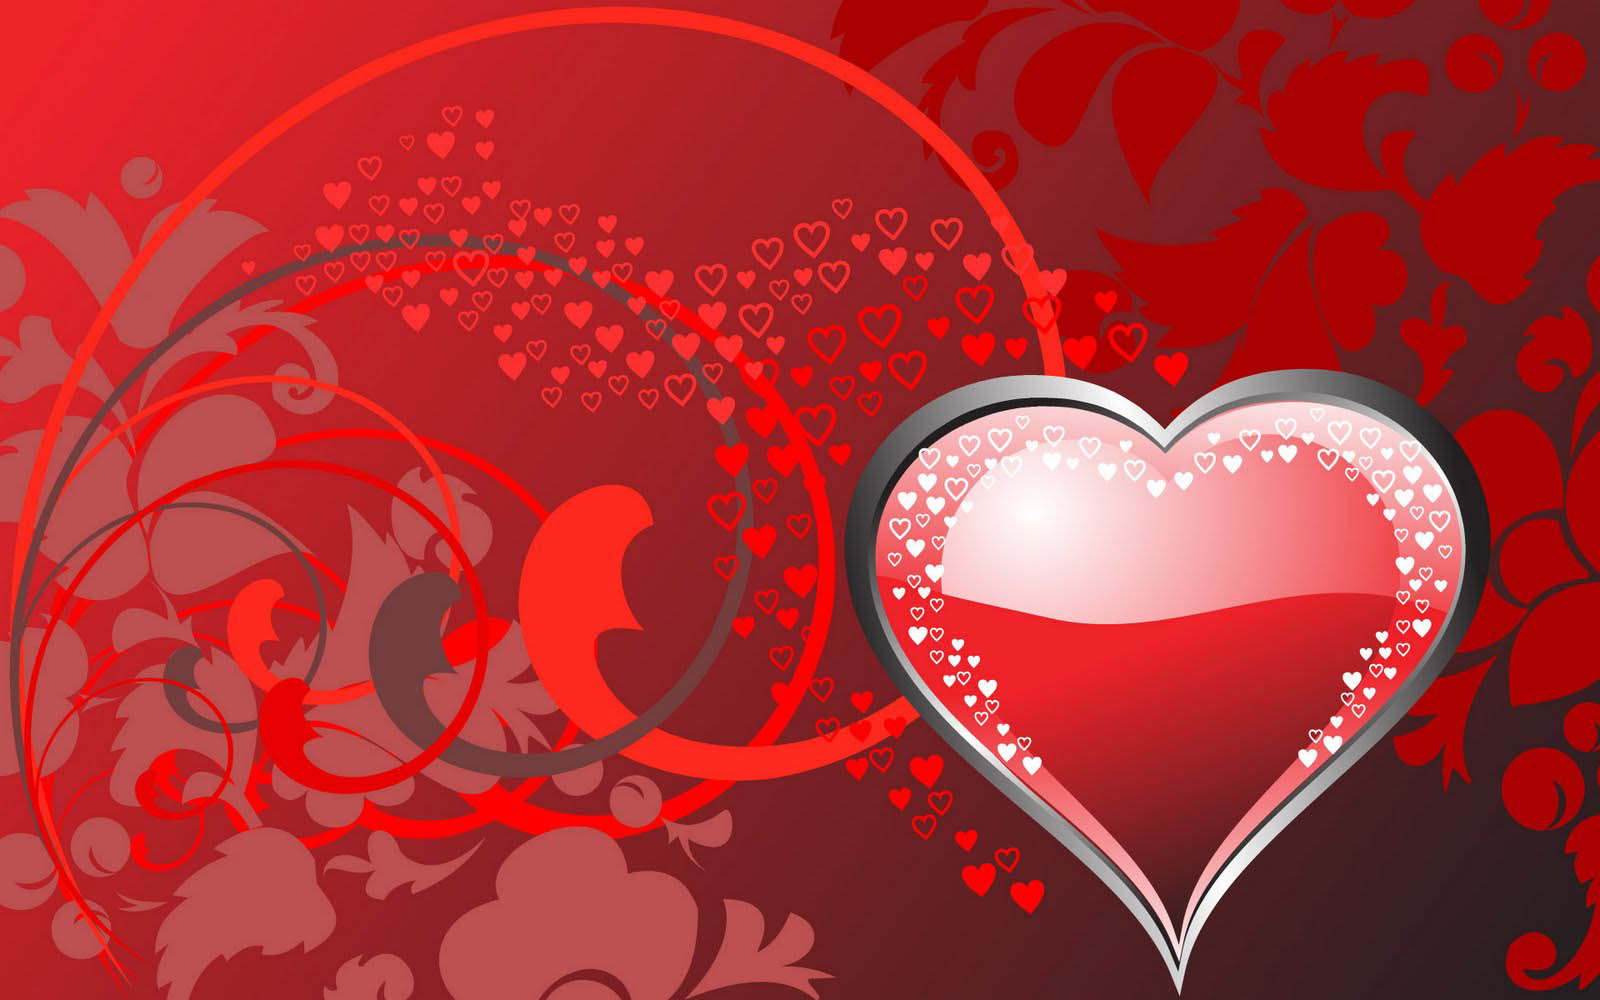 Love Heart Wallpaper Background : wallpapers: Love Hearts Wallpapers